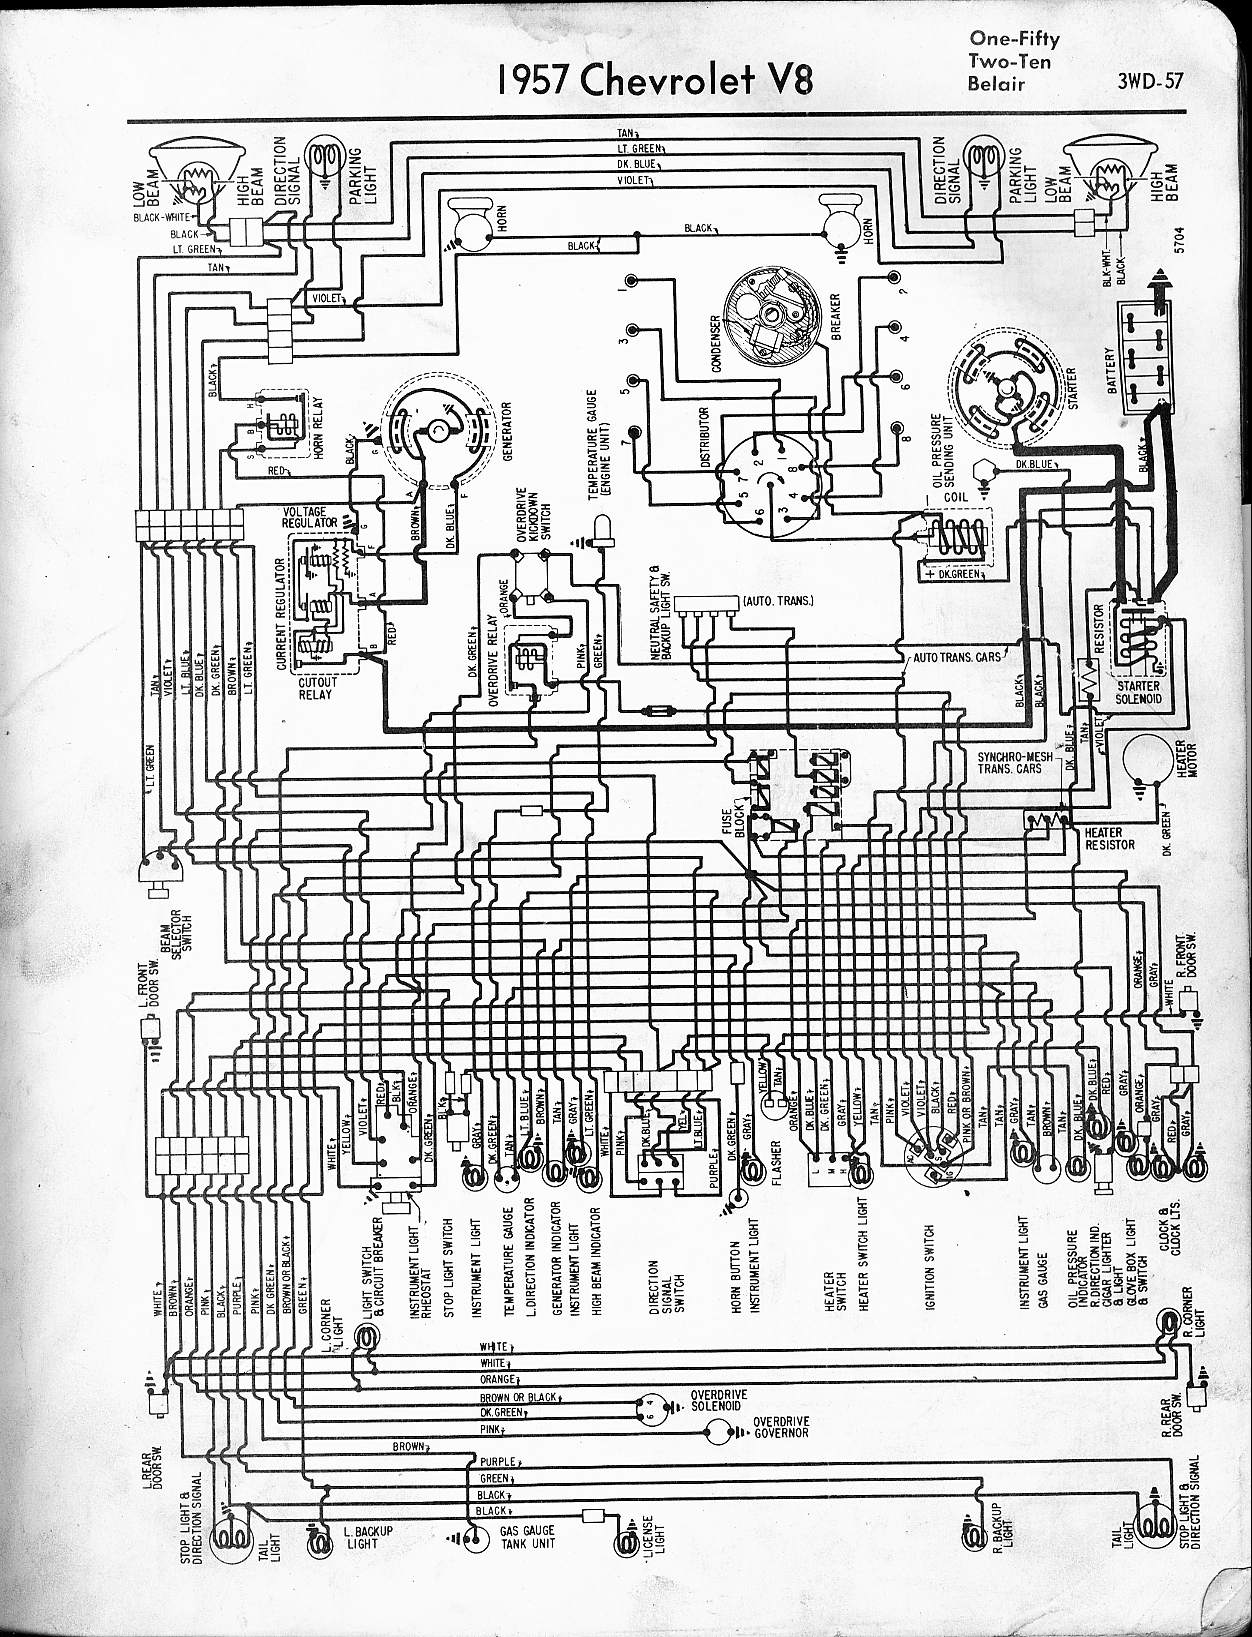 MWireChev57_3WD 057 57 65 chevy wiring diagrams 57 chevy truck wiring harness at aneh.co